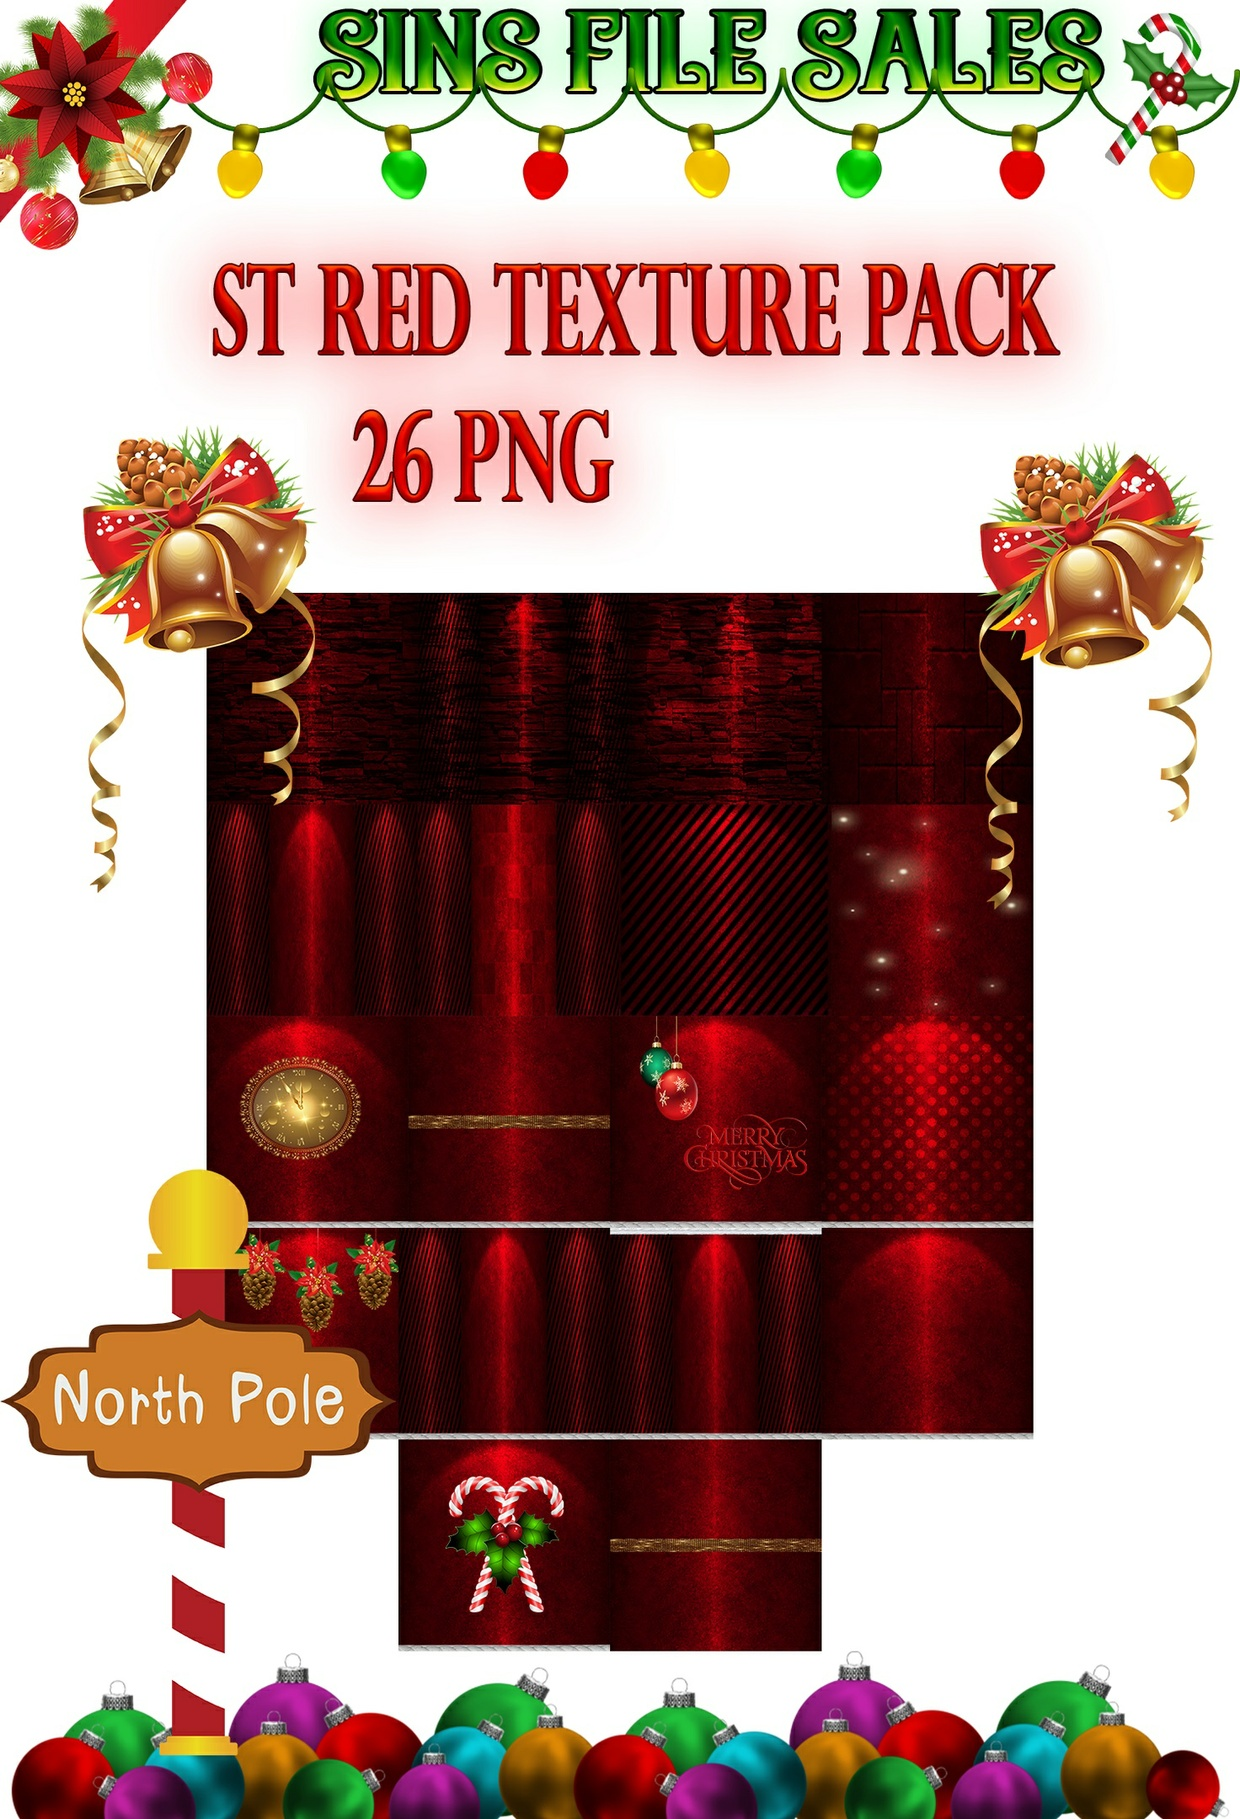 St Red Texture Pack *26 PNG